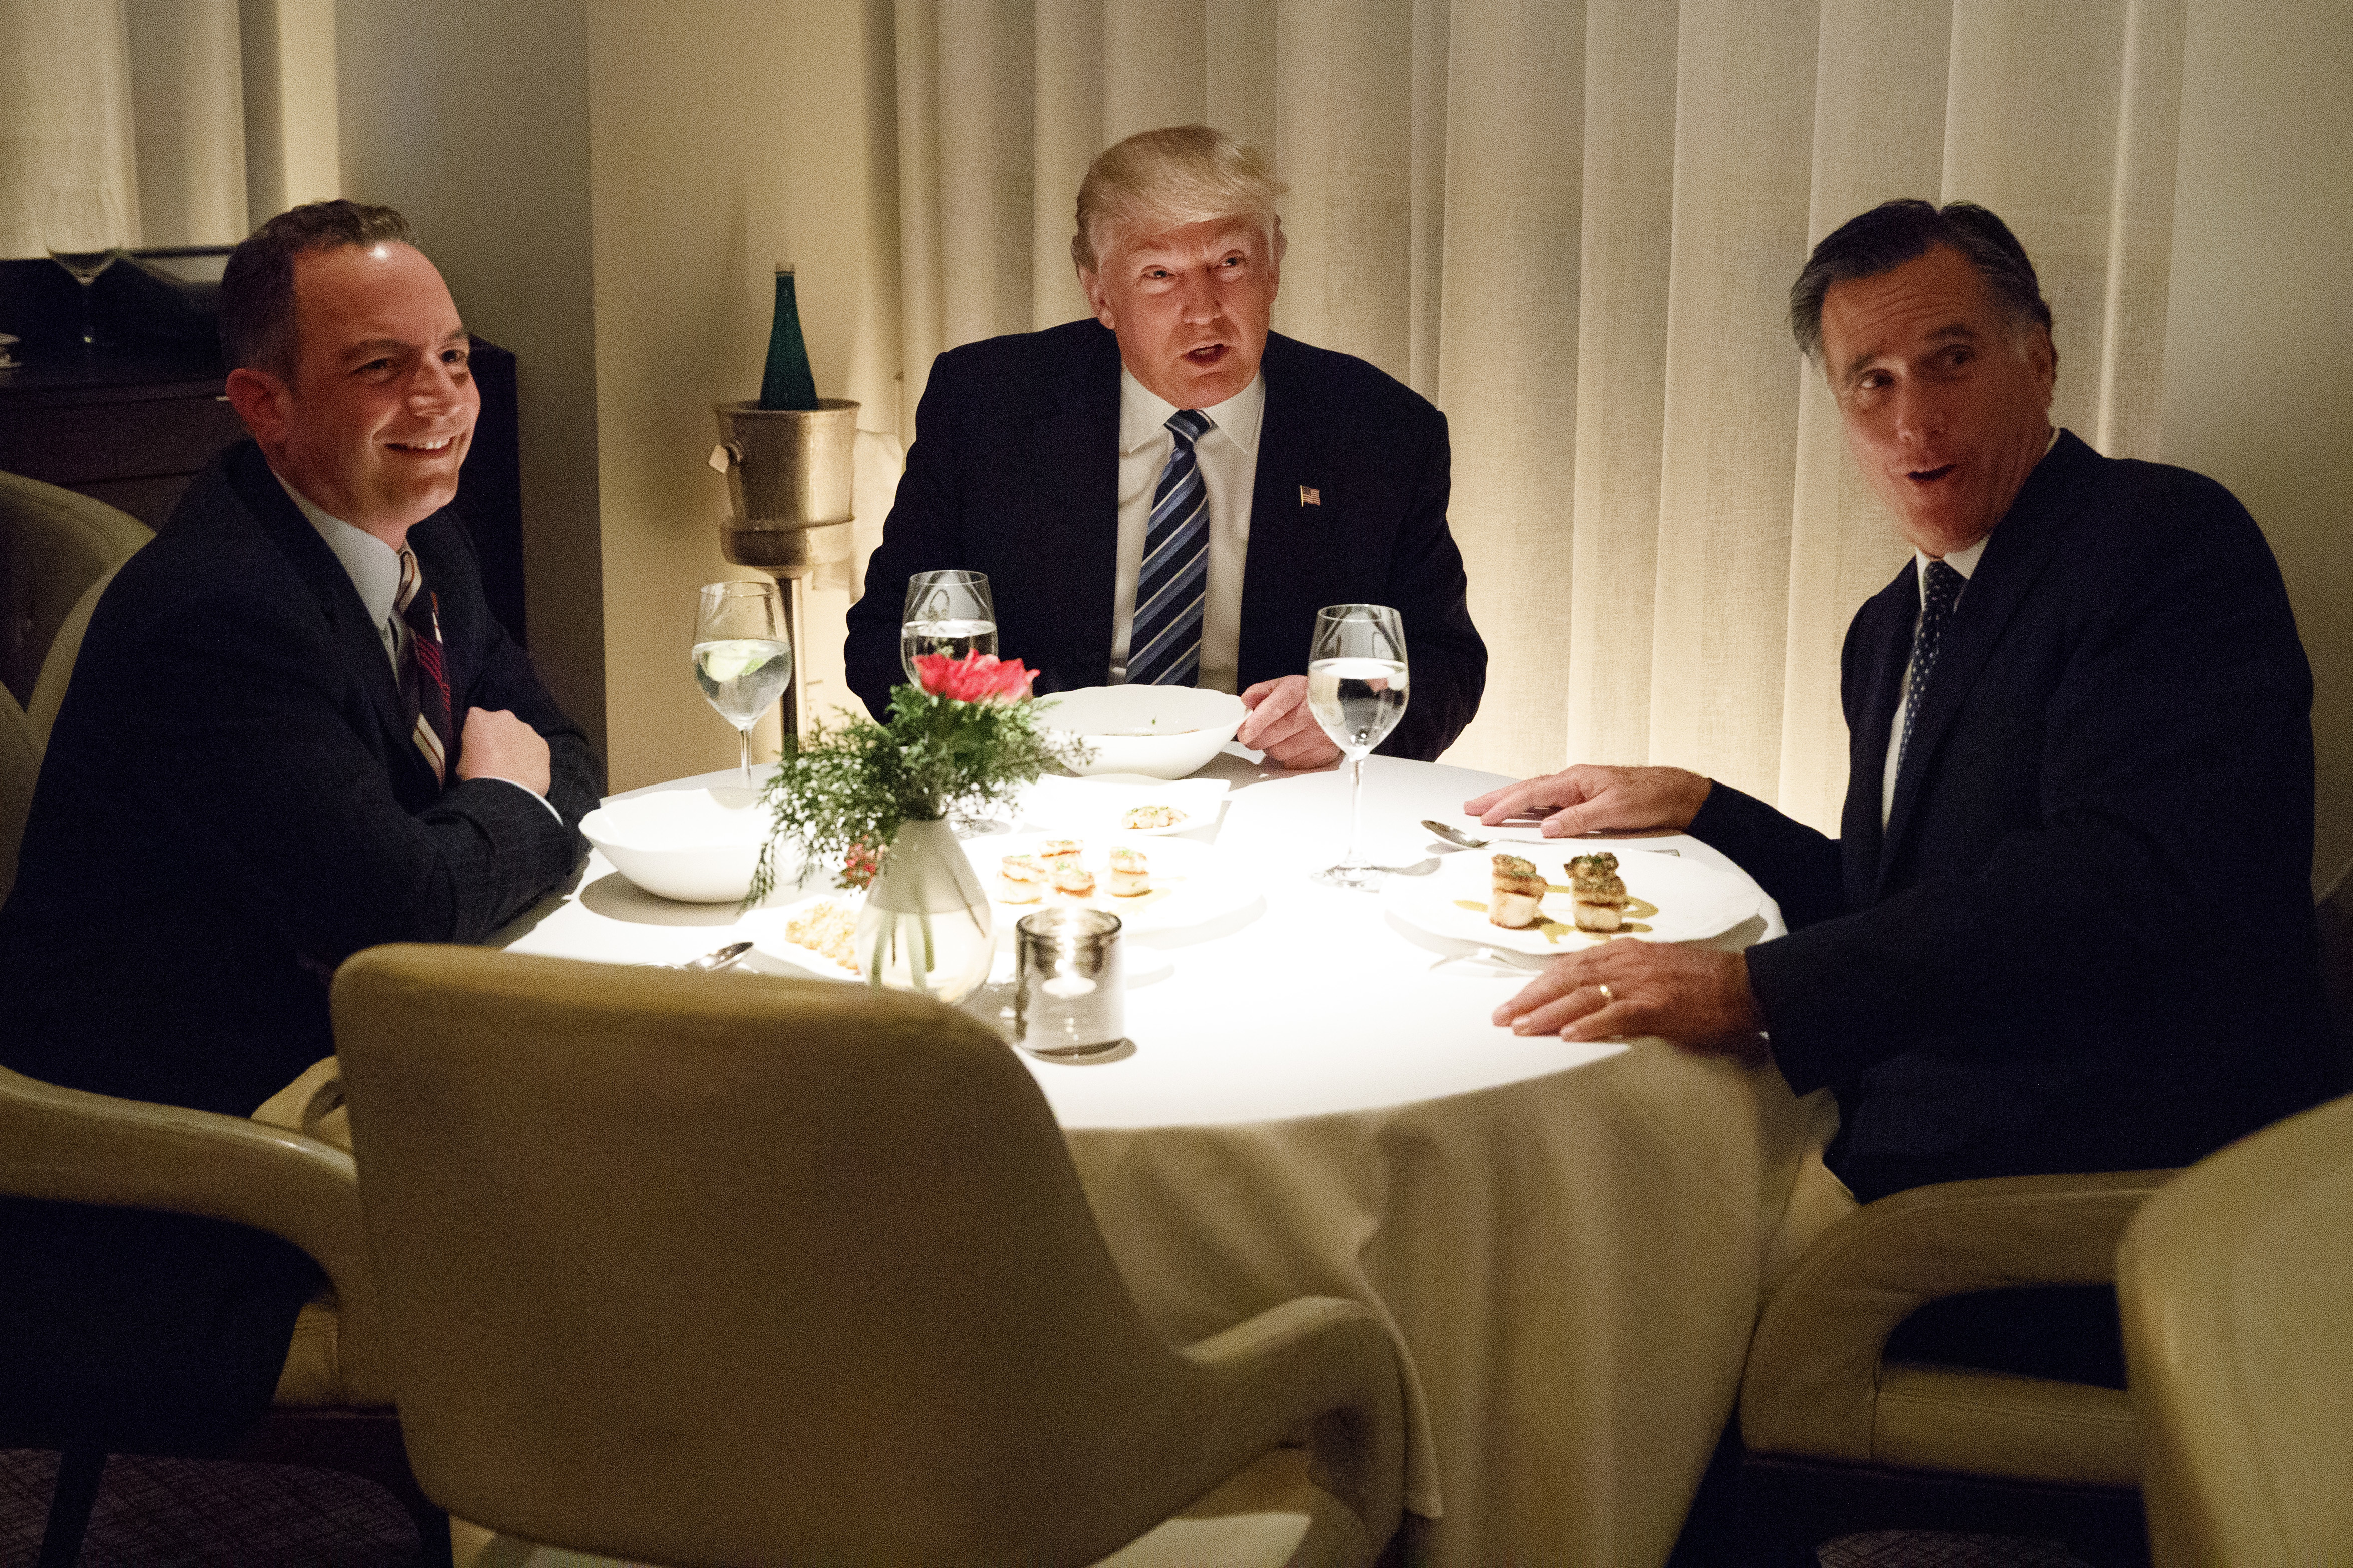 President-elect Donald Trump, center, eats dinner with Mitt Romney, right, and Trump Chief of Staff Reince Priebus at Jean-Georges restaurant, Nov. 29, 2016.